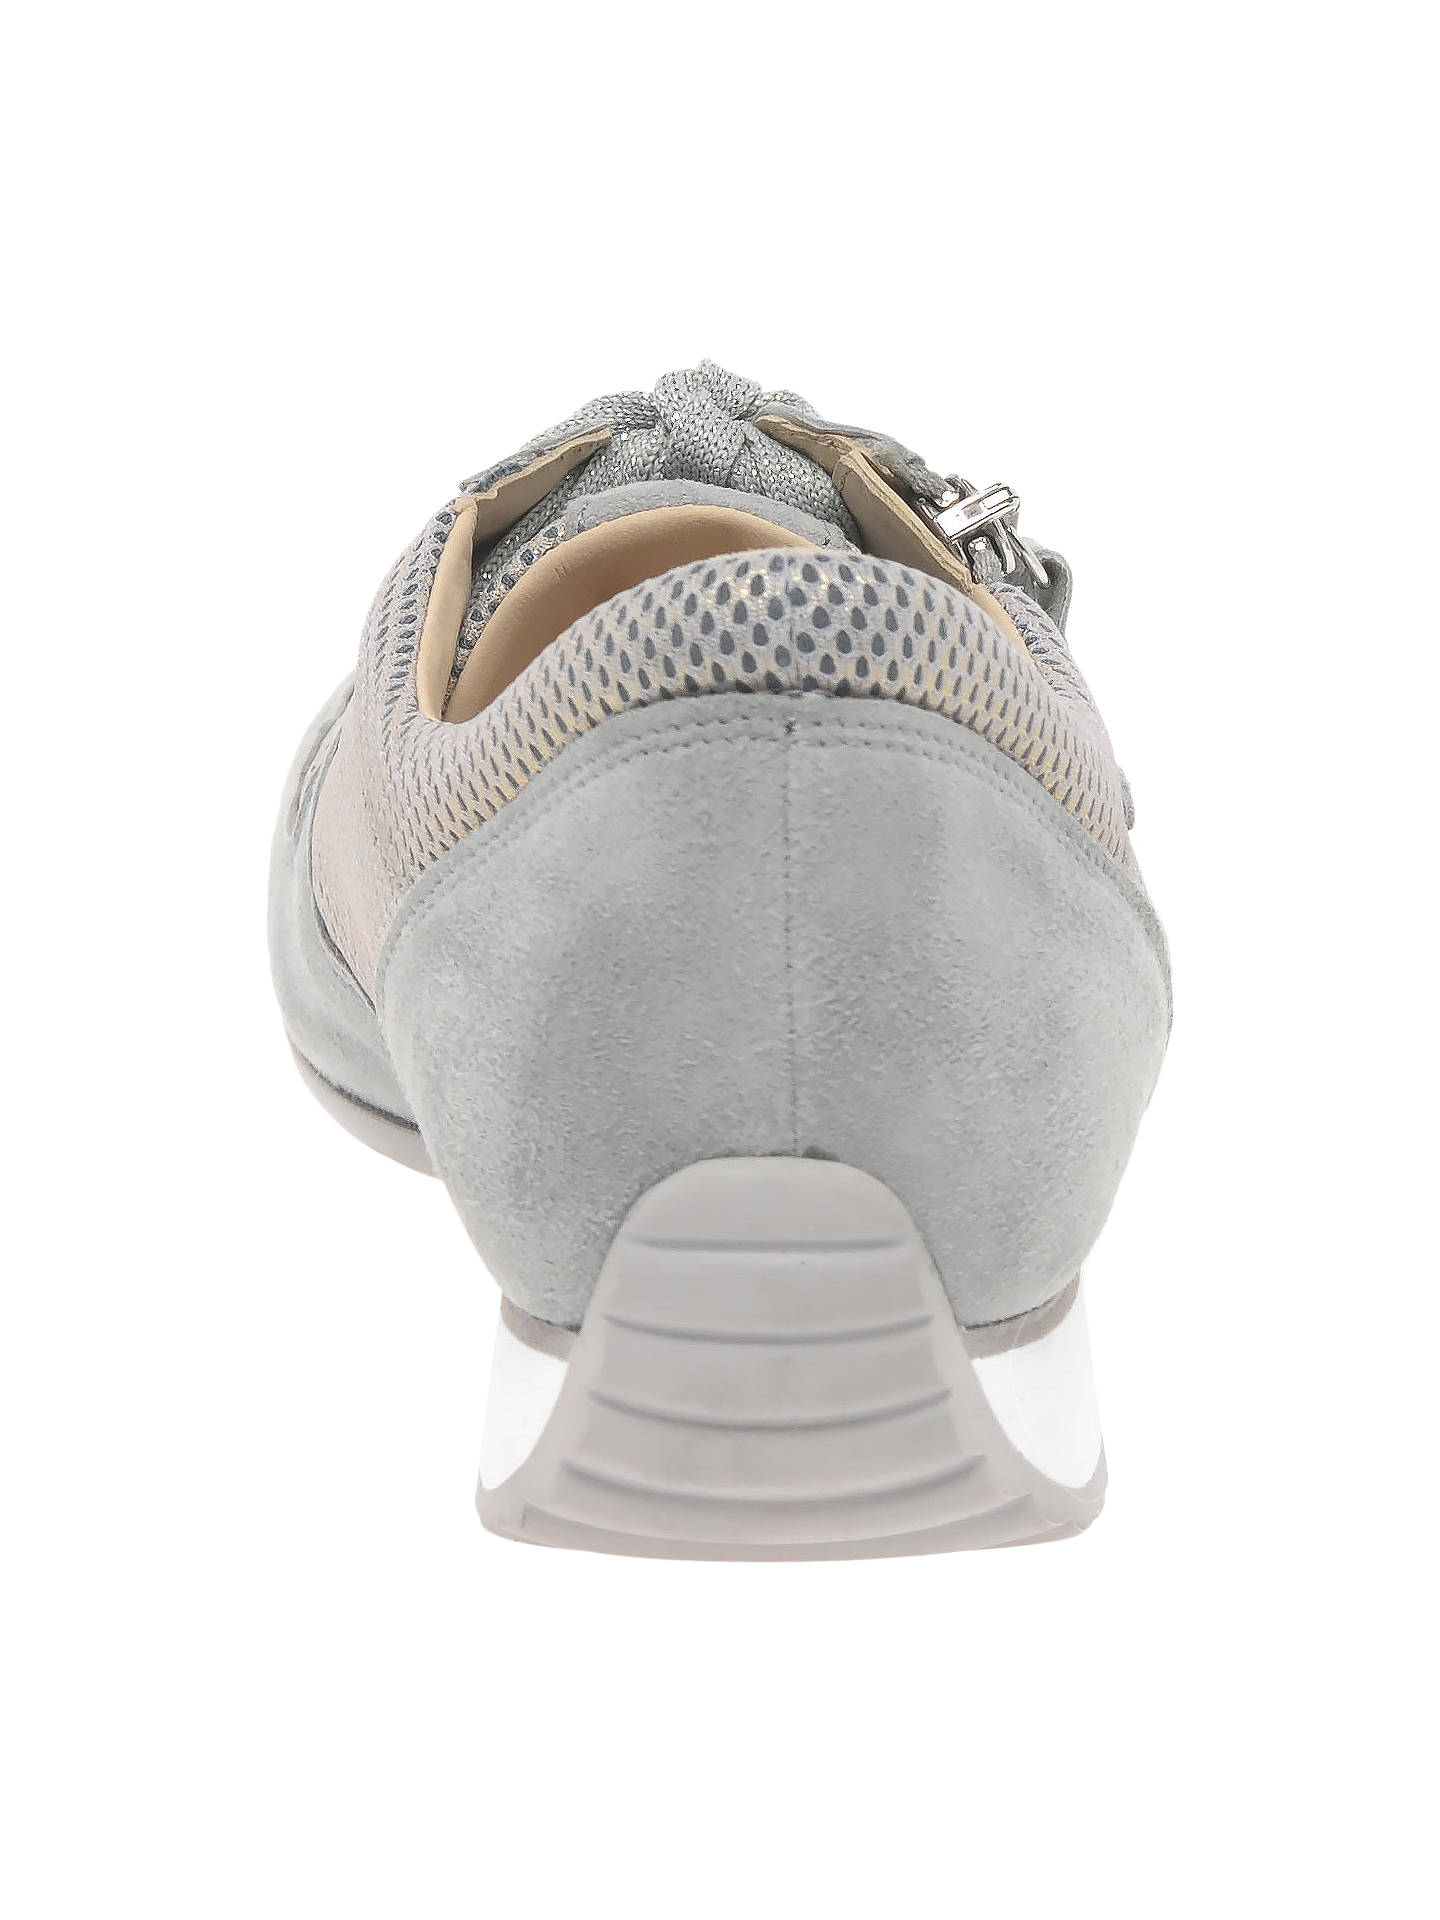 41268b6e33249 ... Buy Gabor Maybelle Wide Fit Lace Up Trainers, Light Grey Suede, 4  Online at ...